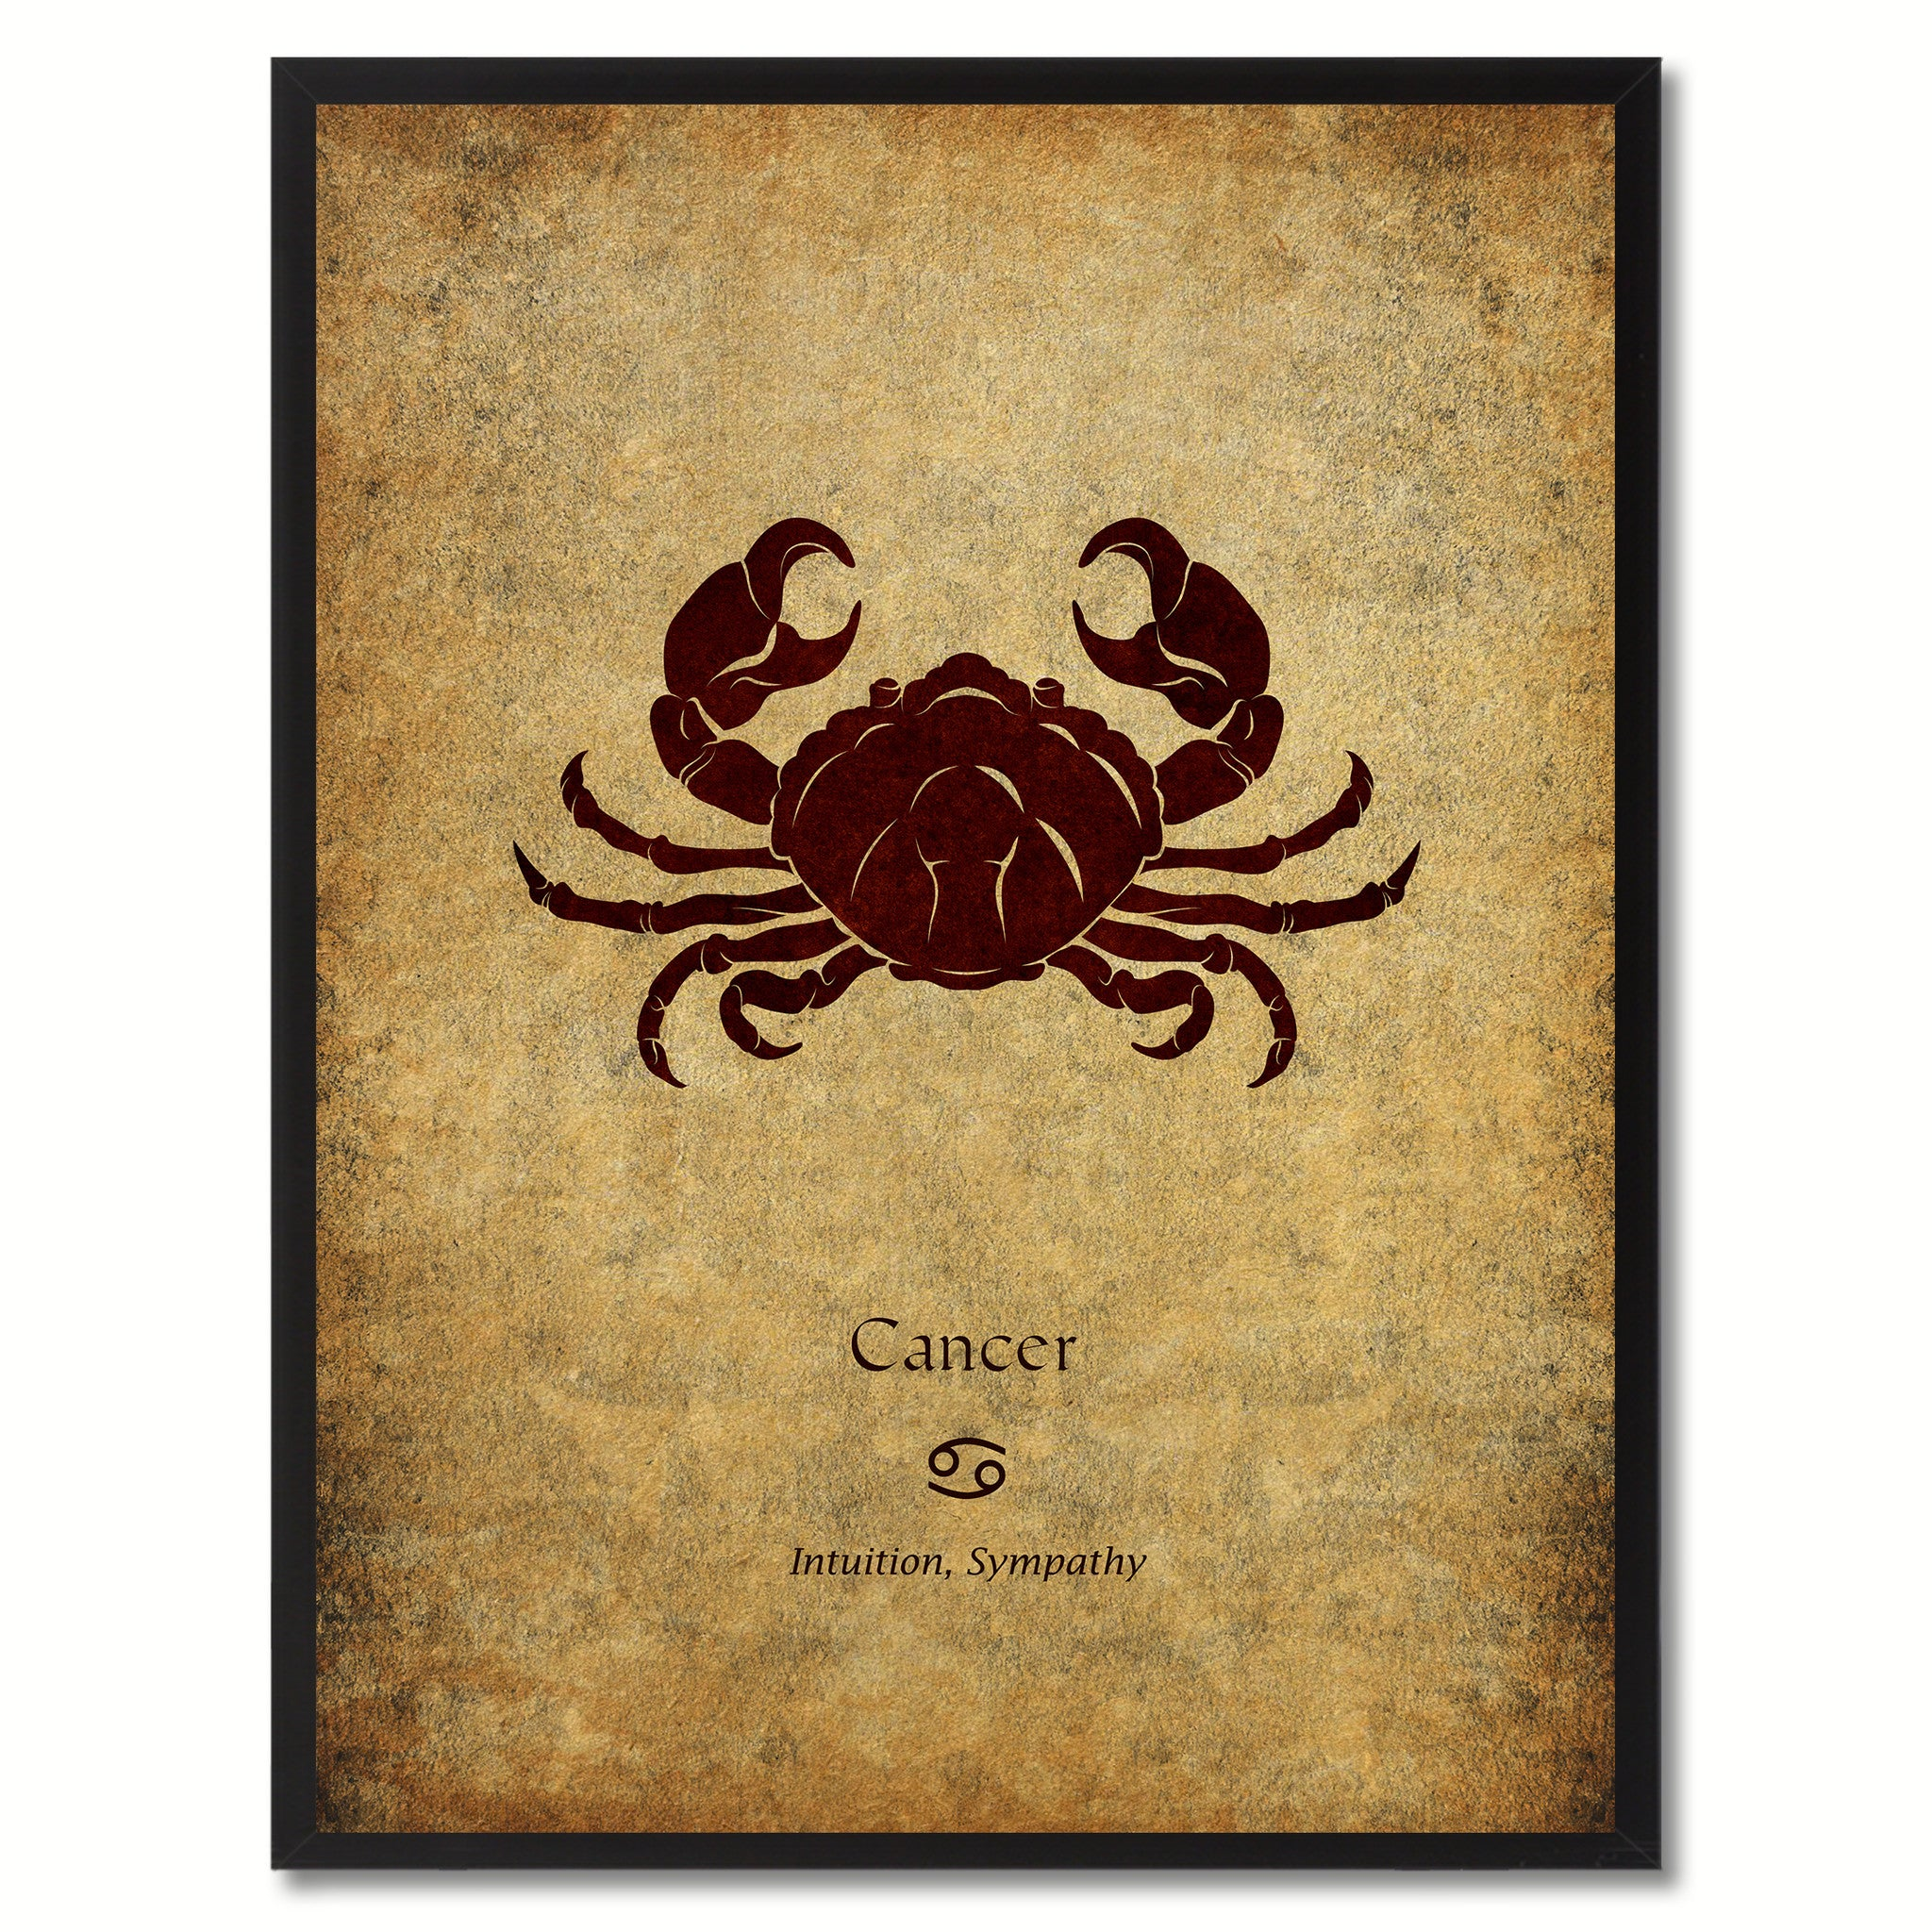 Zodiac Cancer Horoscope Astrology Canvas Print, Picture Frame Home Decor Wall Art Gift